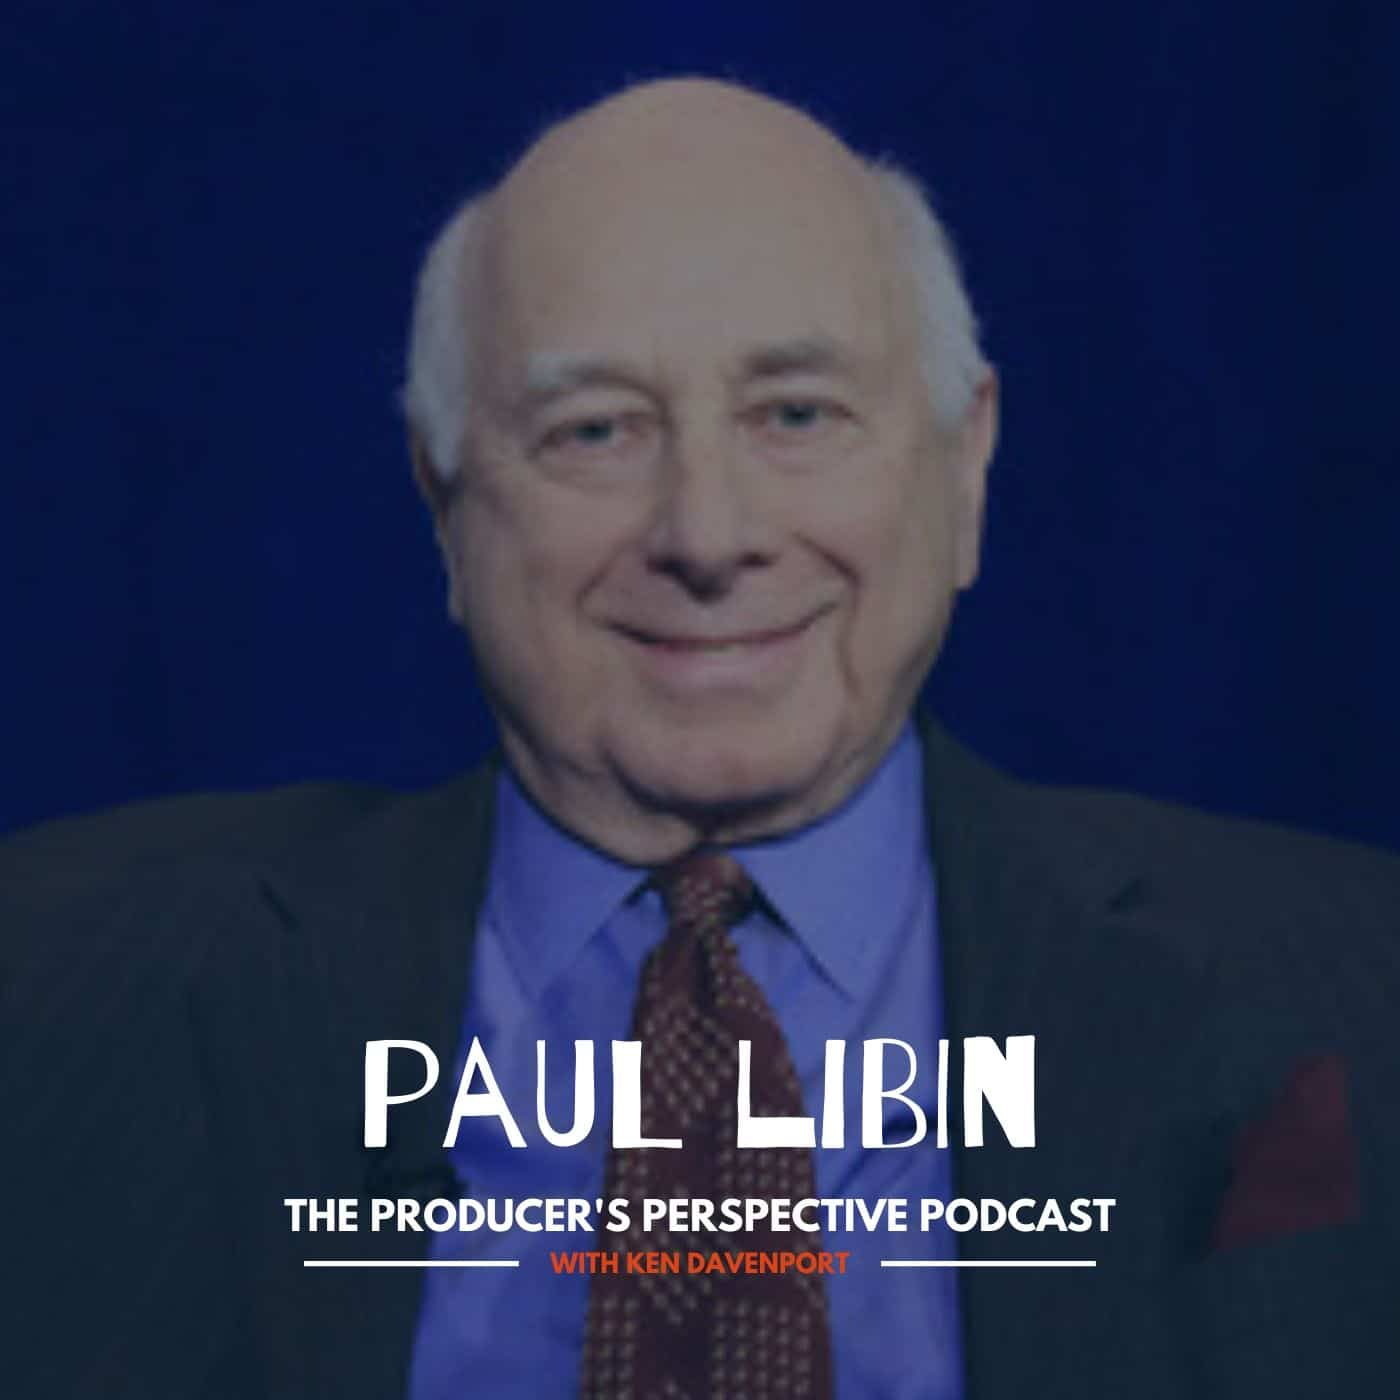 Ken Davenport's The Producer's Perspective Podcast Episode 76 - Paul Libin